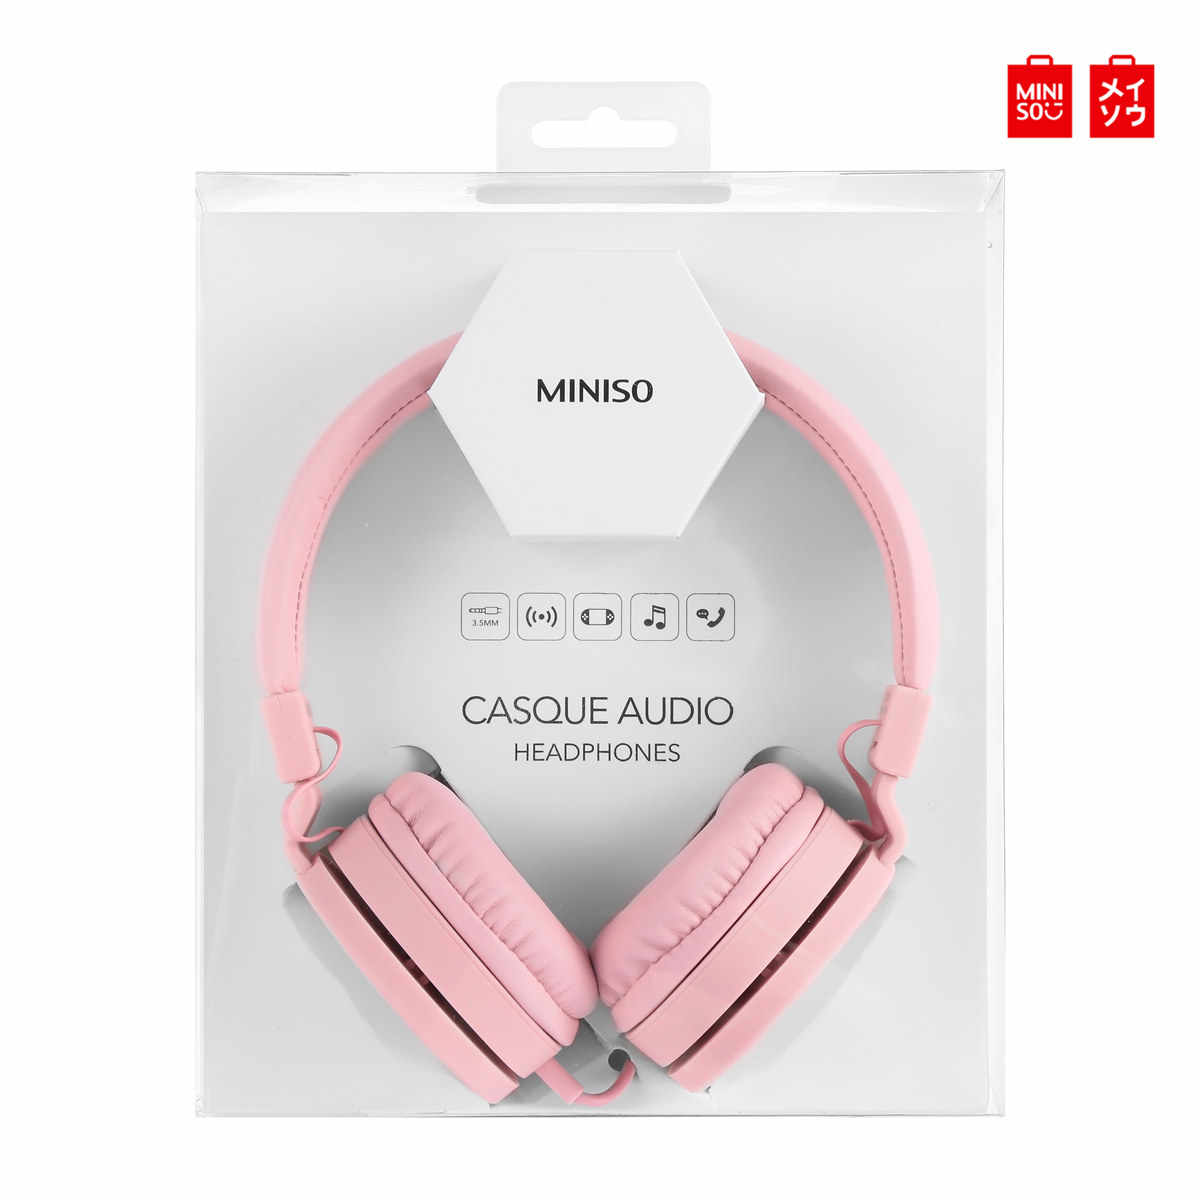 Miniso HM001 Folding Musik Headphone 3.5 Mm Wired Earphone Heavy Bass Headset Hi-Fi Stereo Headset Concision Style